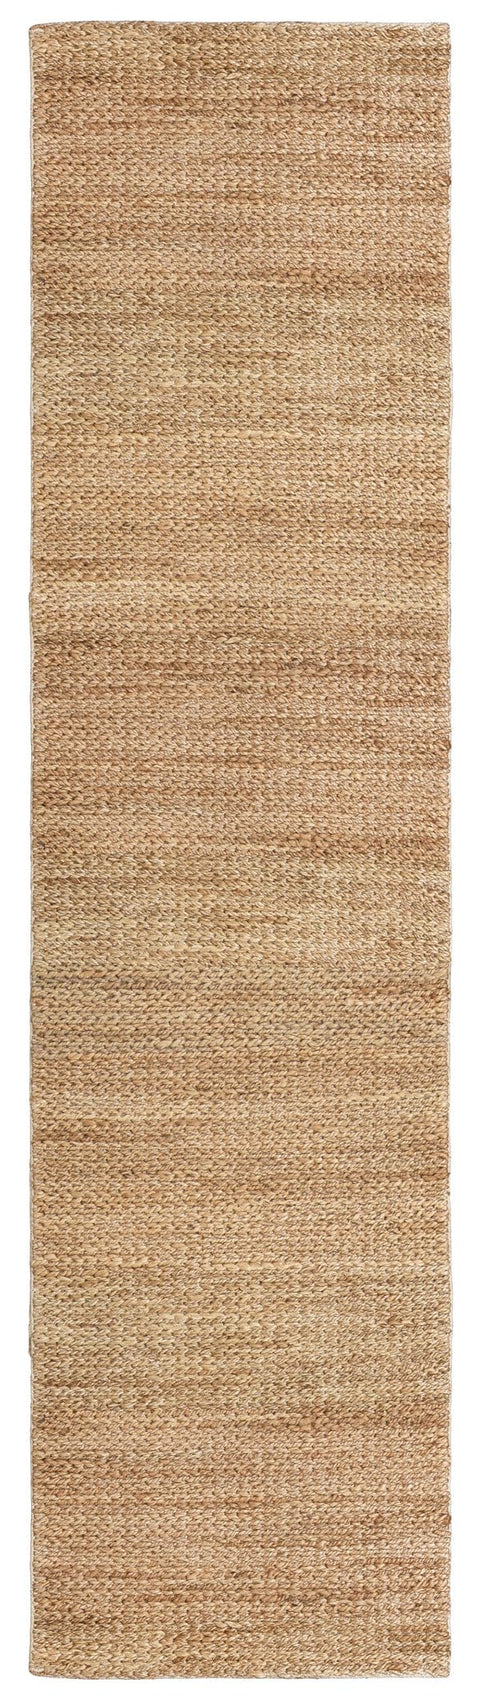 Raven Natural Tan Braided Jute Runner Rug